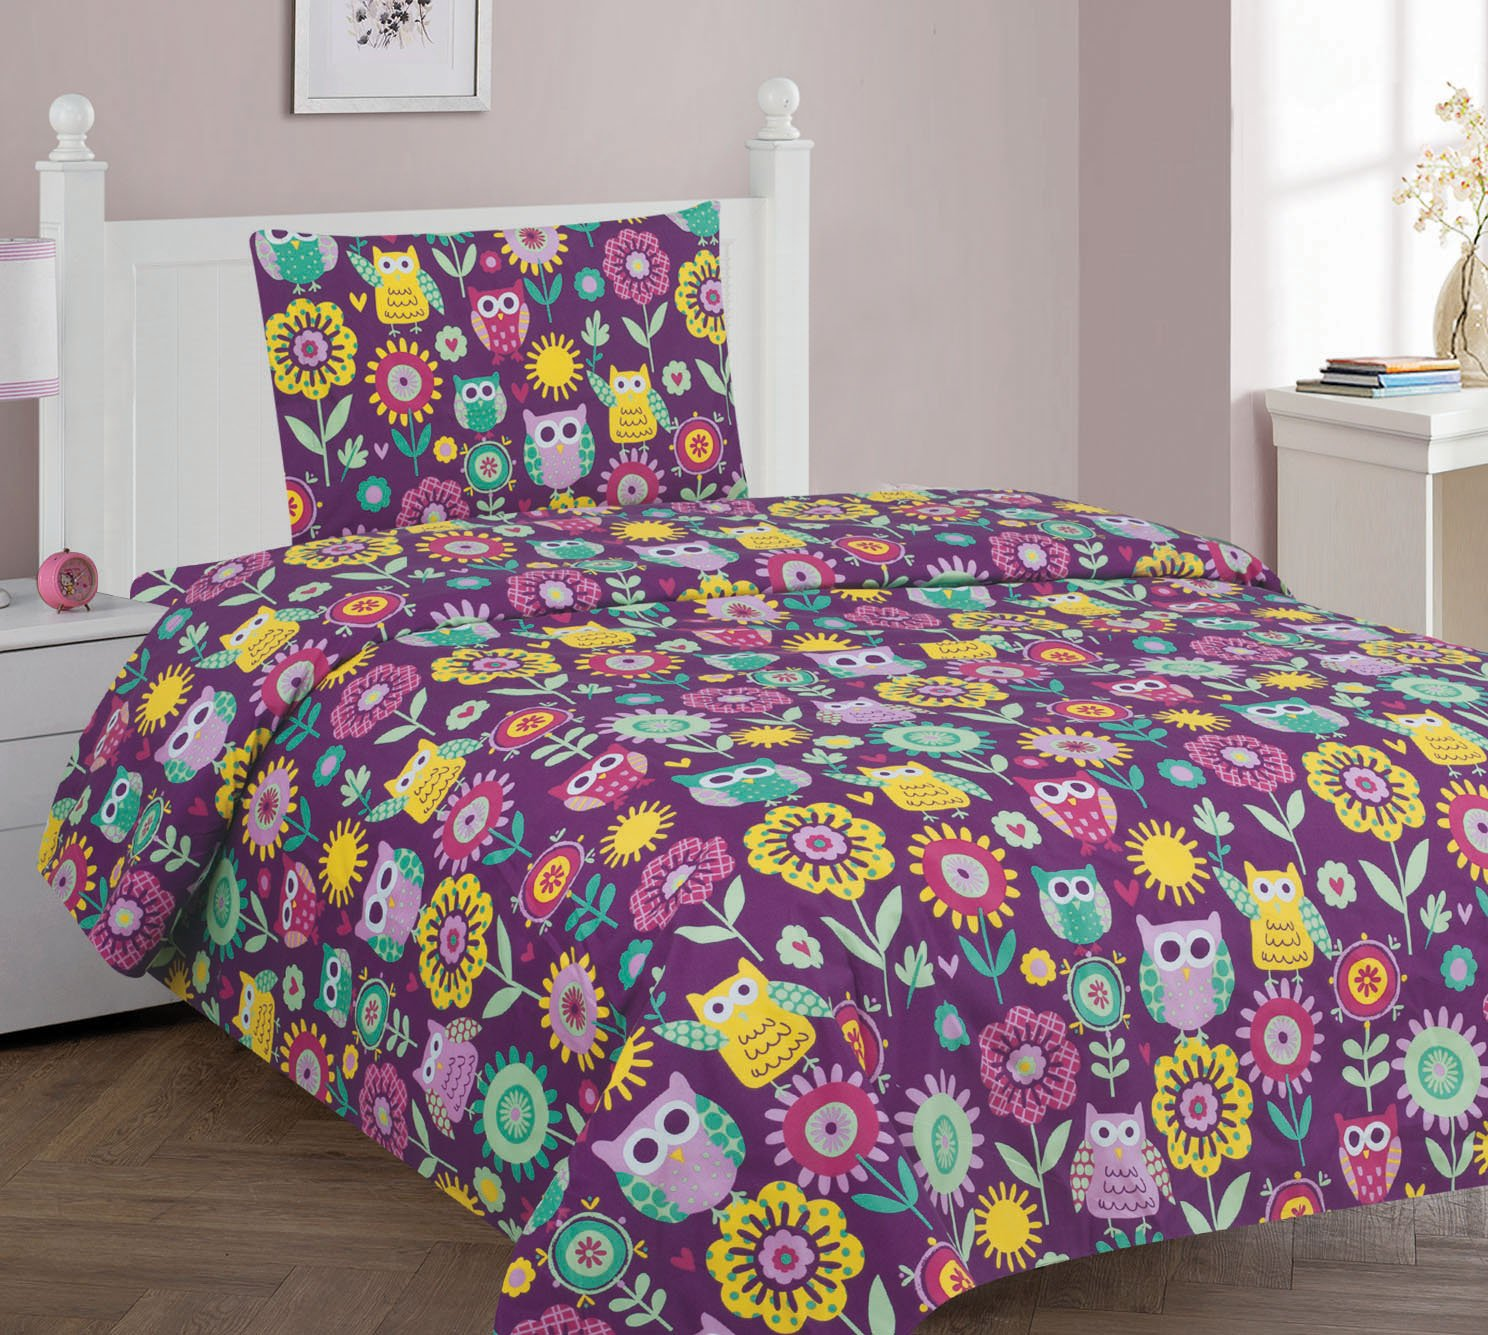 Goldenlinens Twin Size 3 Pieces (1pc Flat Sheet, 1 Fitted Sheet & 1 pillow Case) Purple Owl Flower Printed New Designs Kids Bed Sheet Set# Owl Twin Sheet